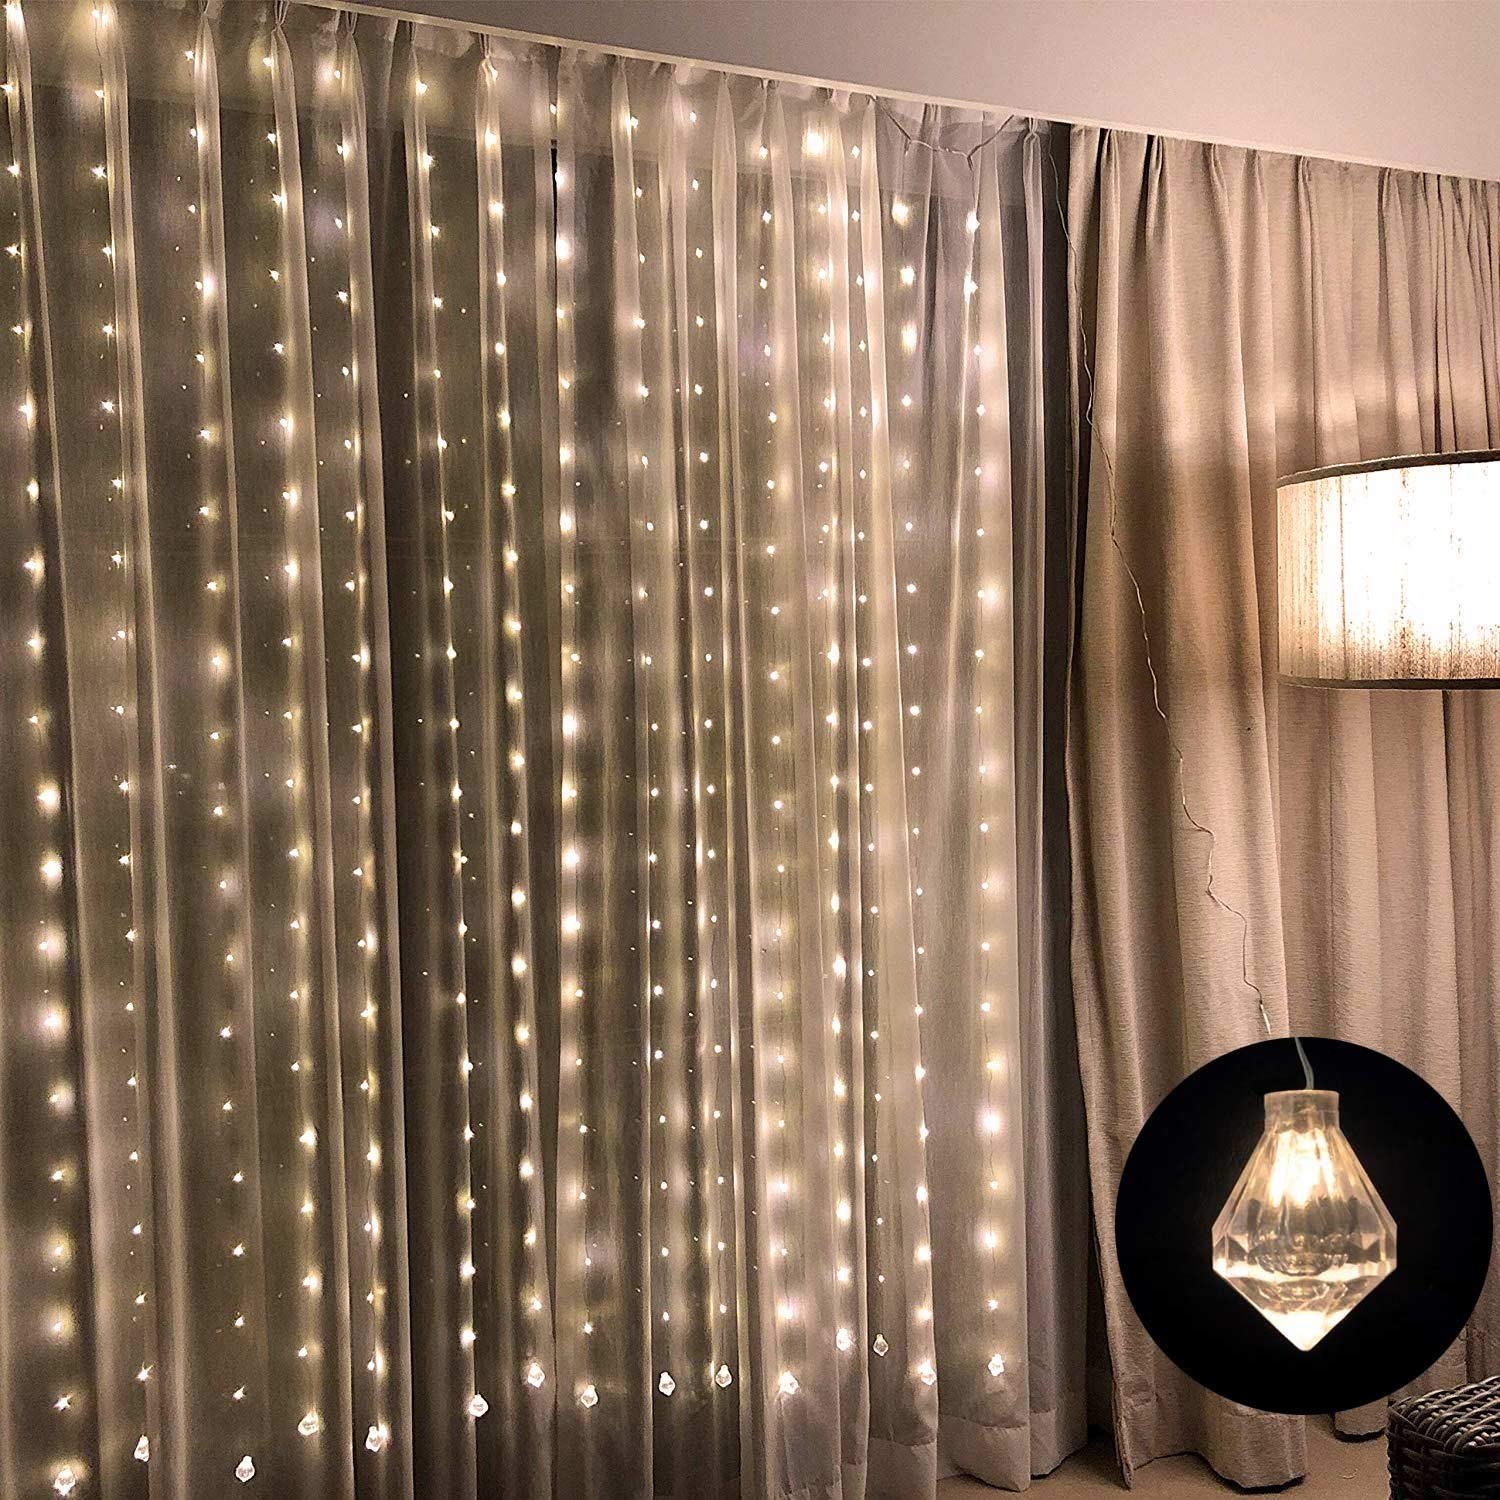 Linkind LED Curtain String Lights, Braided Copper Wire Fairy String Lights